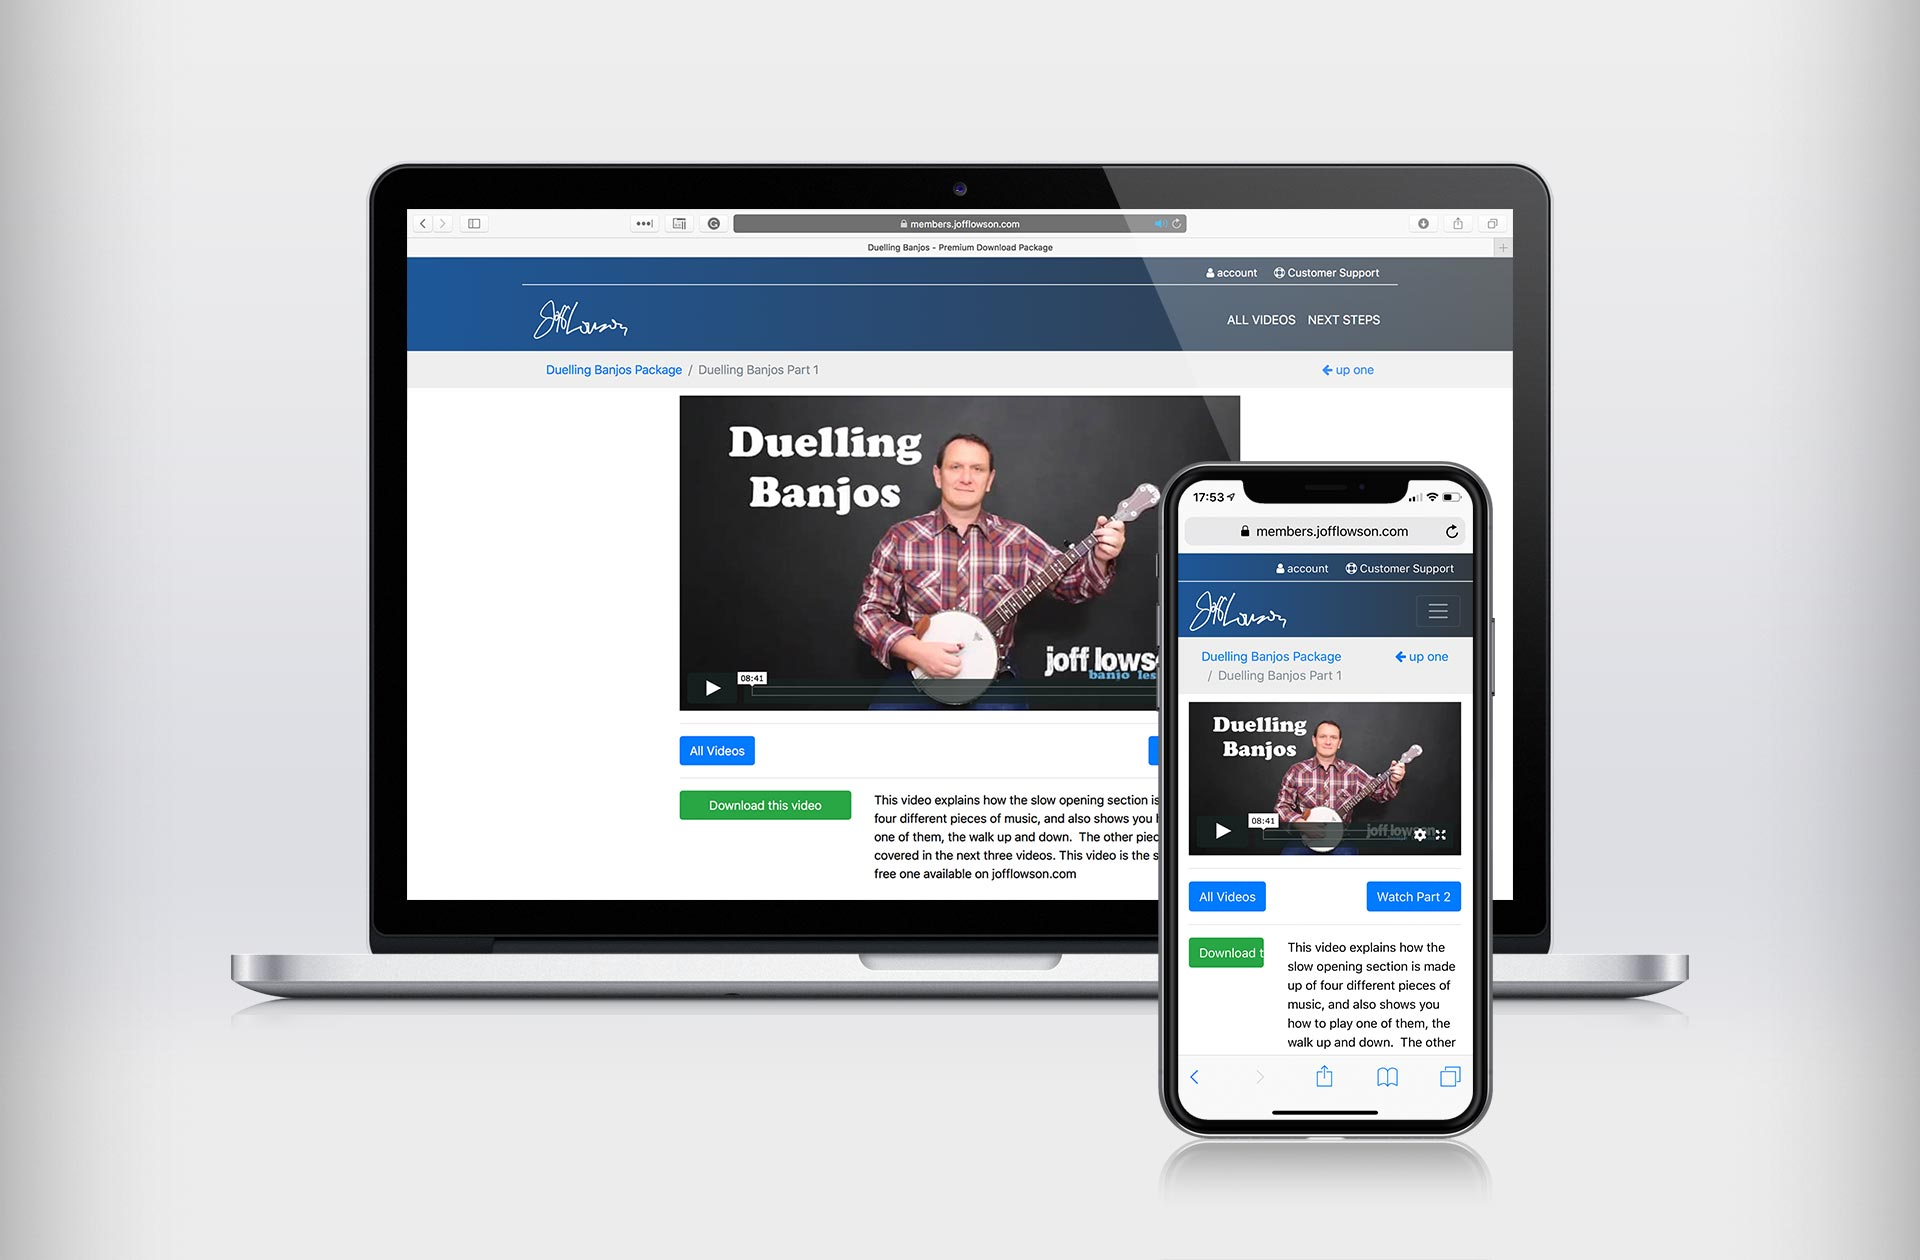 Learn to play Duelling Banjos with Joff Lowson